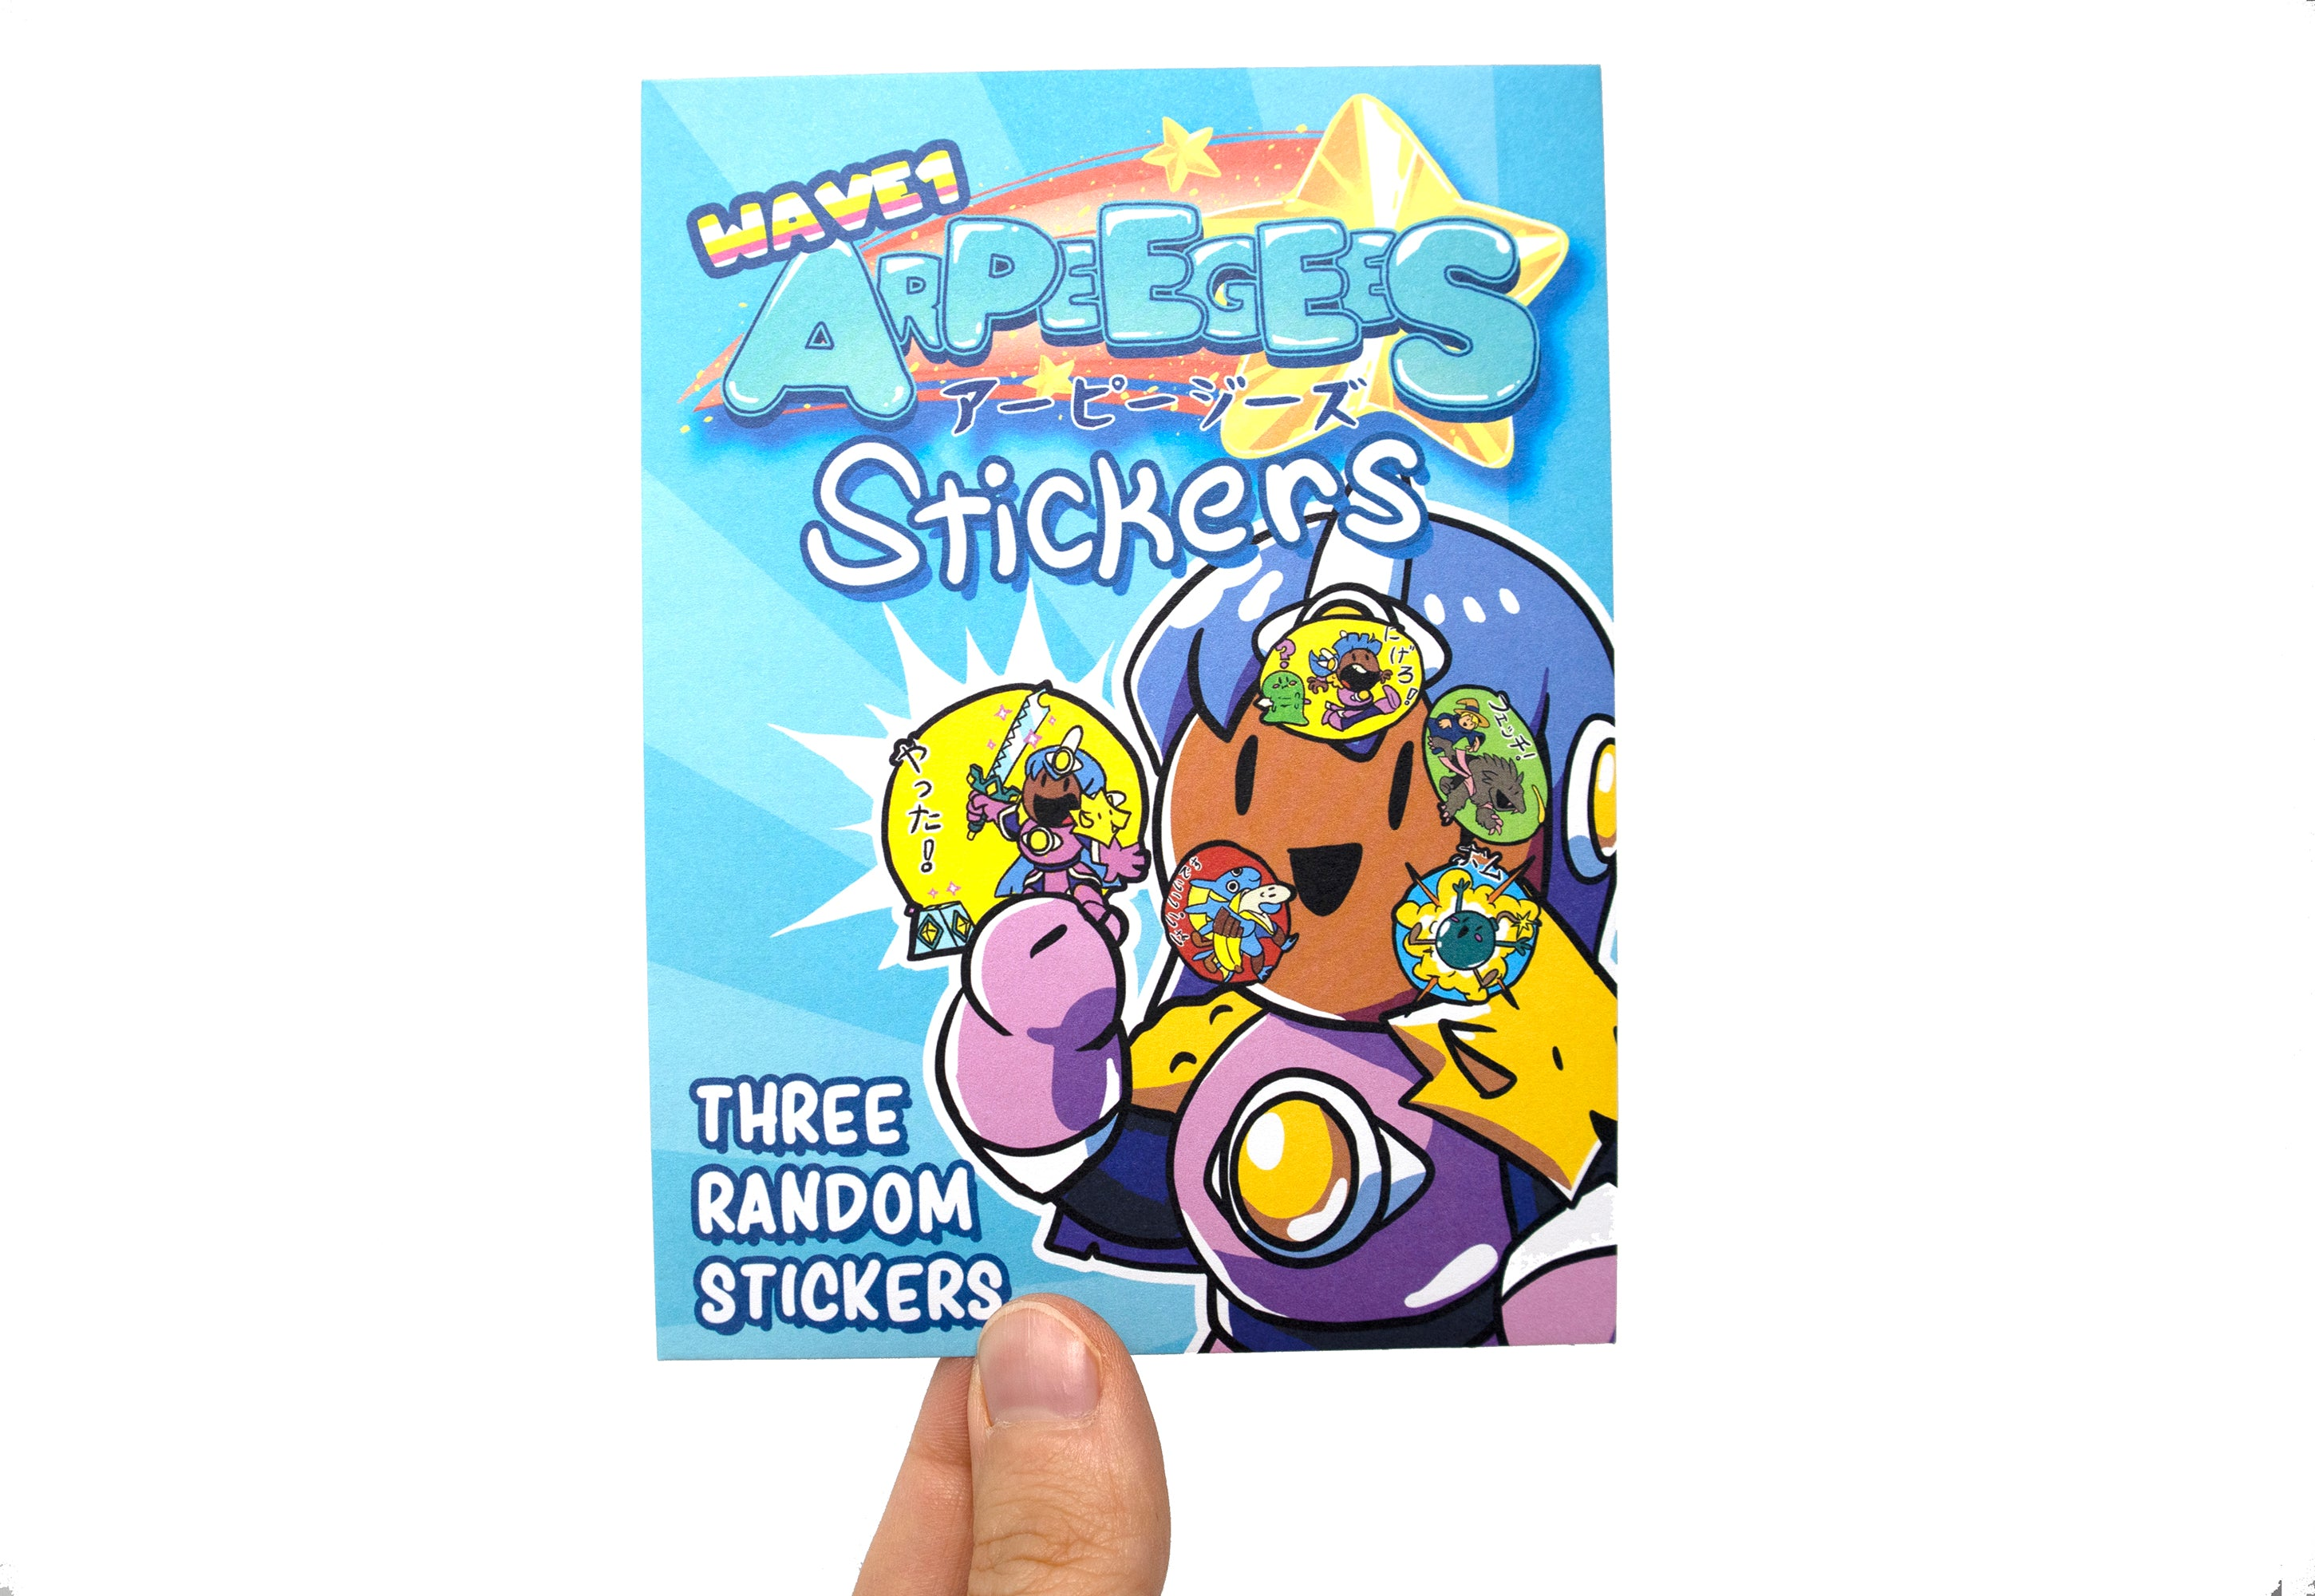 ARPEEGEES Stickers! Wave 1 Blind Pack - 3 RANDOM STICKERS